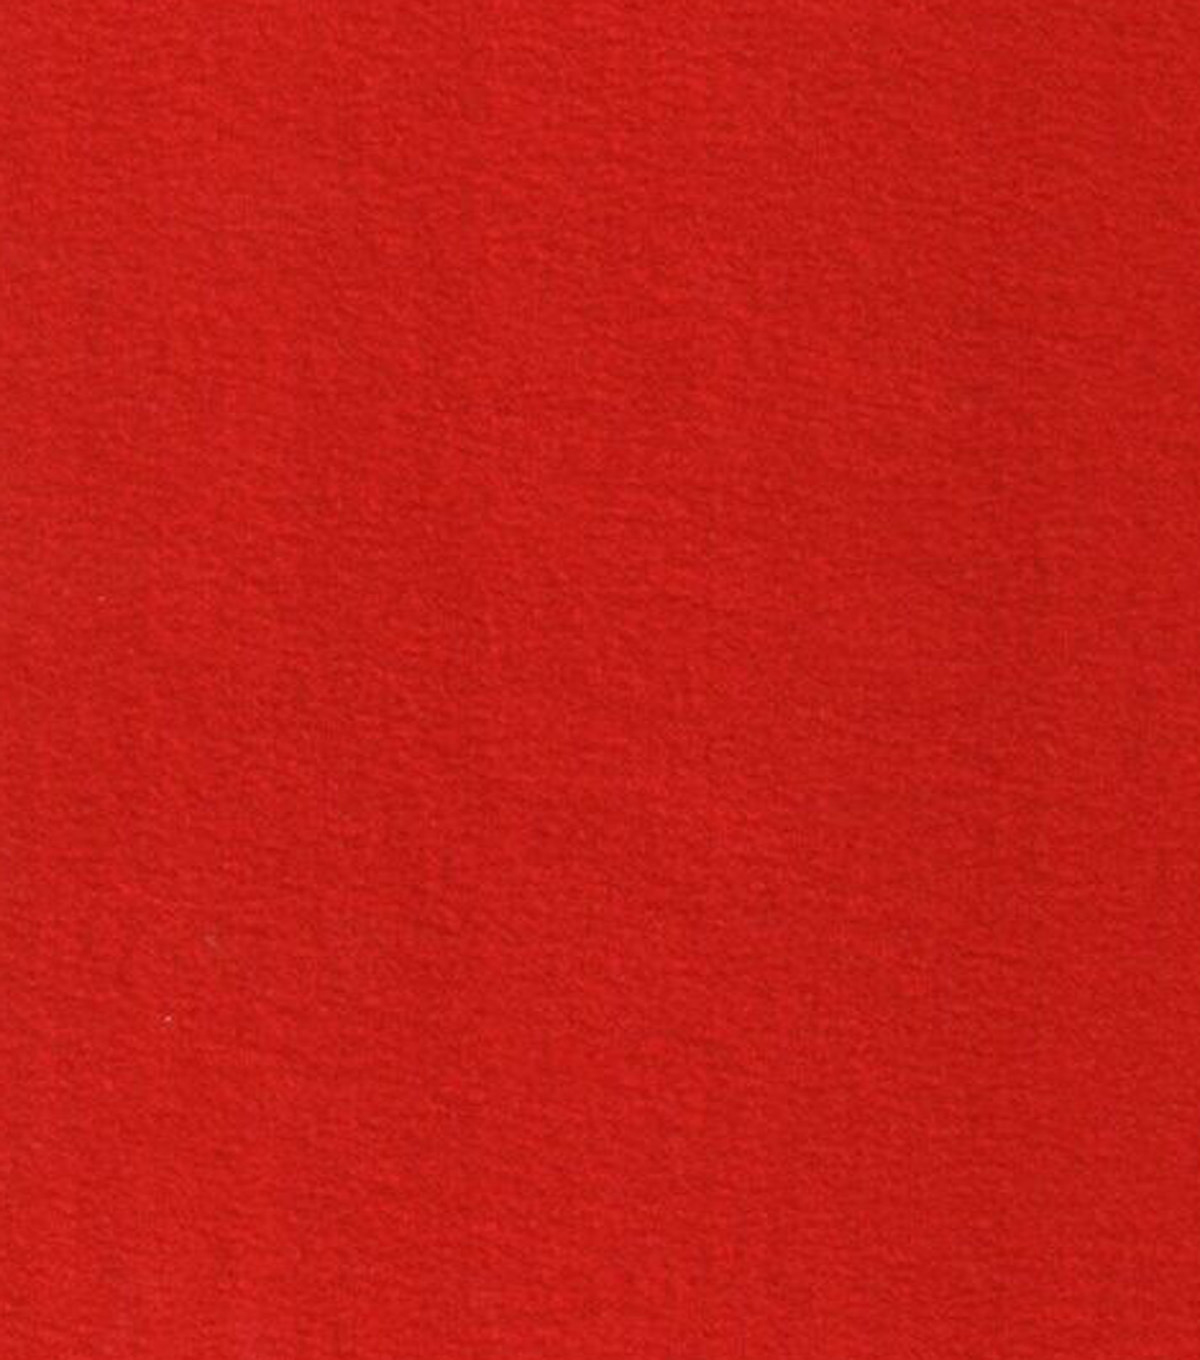 Blizzard Fleece Fabric Solids-3 yard Pieces, Chili Red